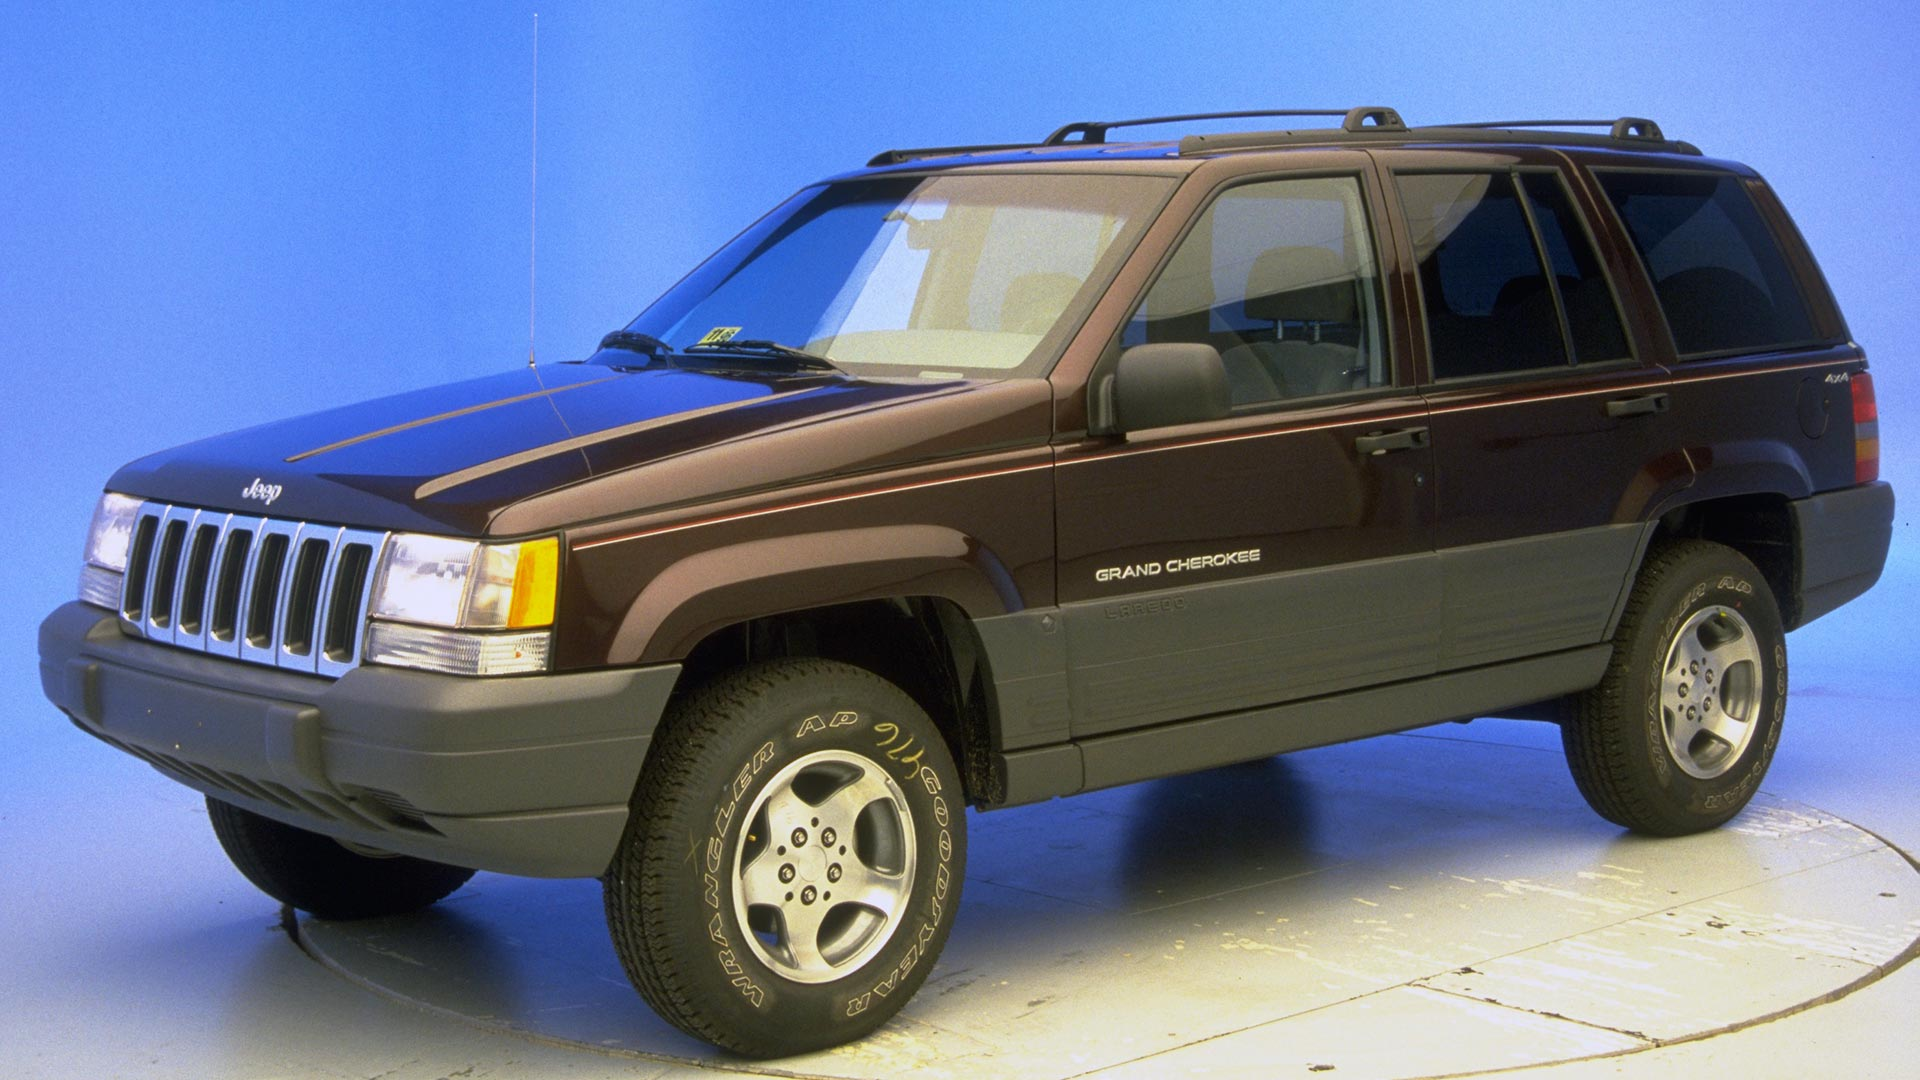 1998 Jeep Grand Cherokee 4-door SUV